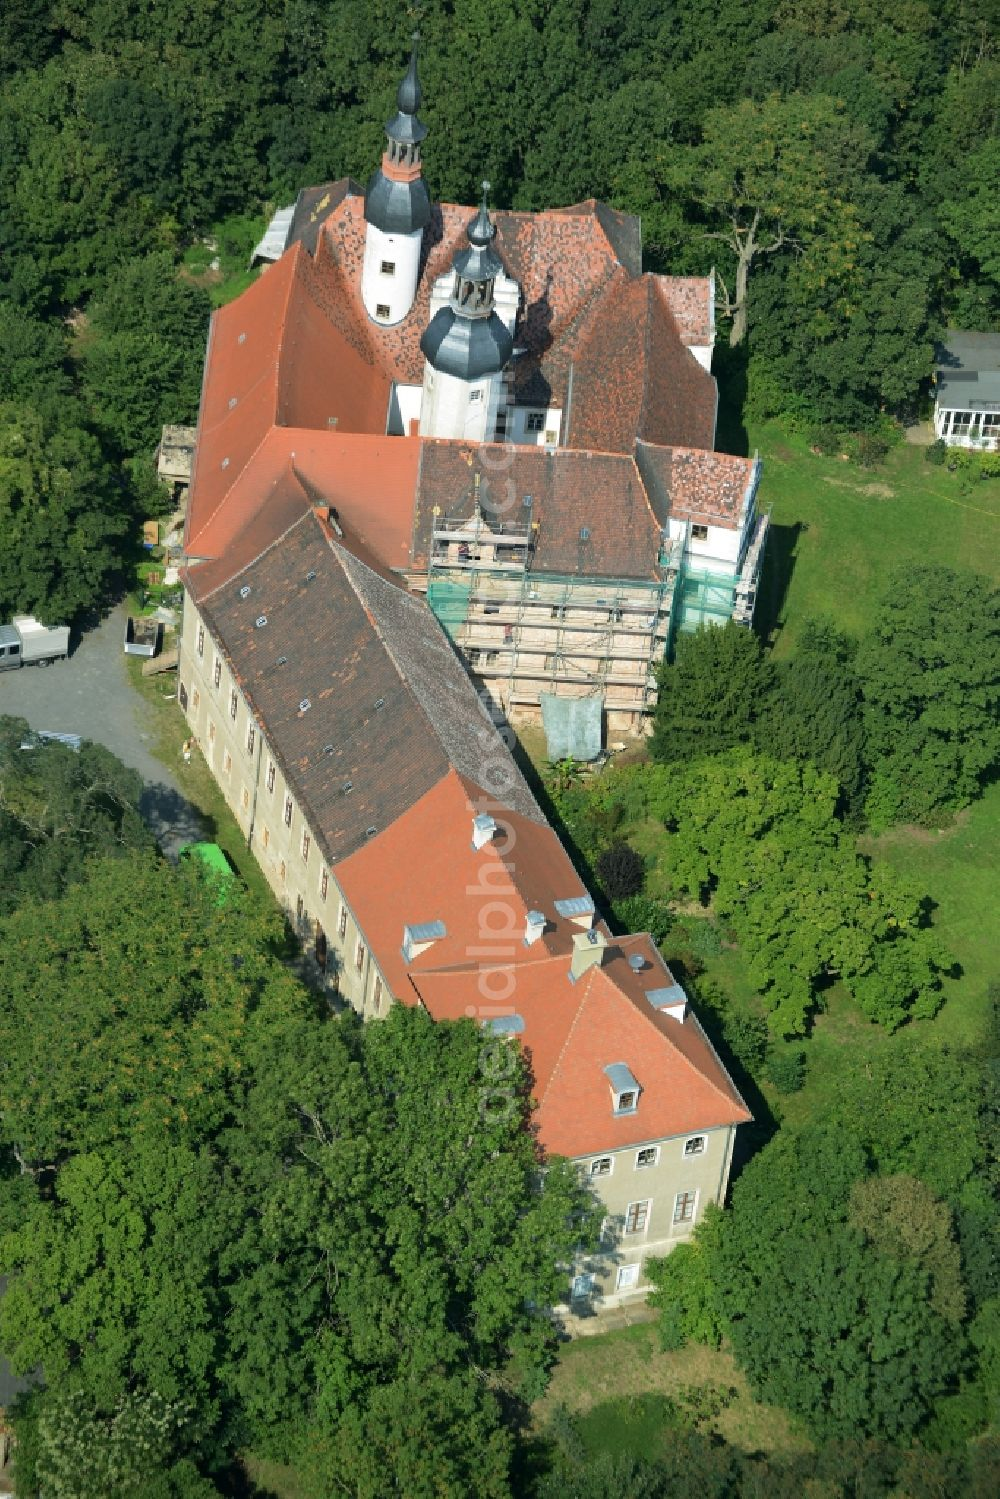 Aerial image Zschepplin - Building and Park of Castle Zschepplin in Zschepplin in the state of Saxony. The castle with its church, yard and towers is located in a forest on the edge of Zschepplin